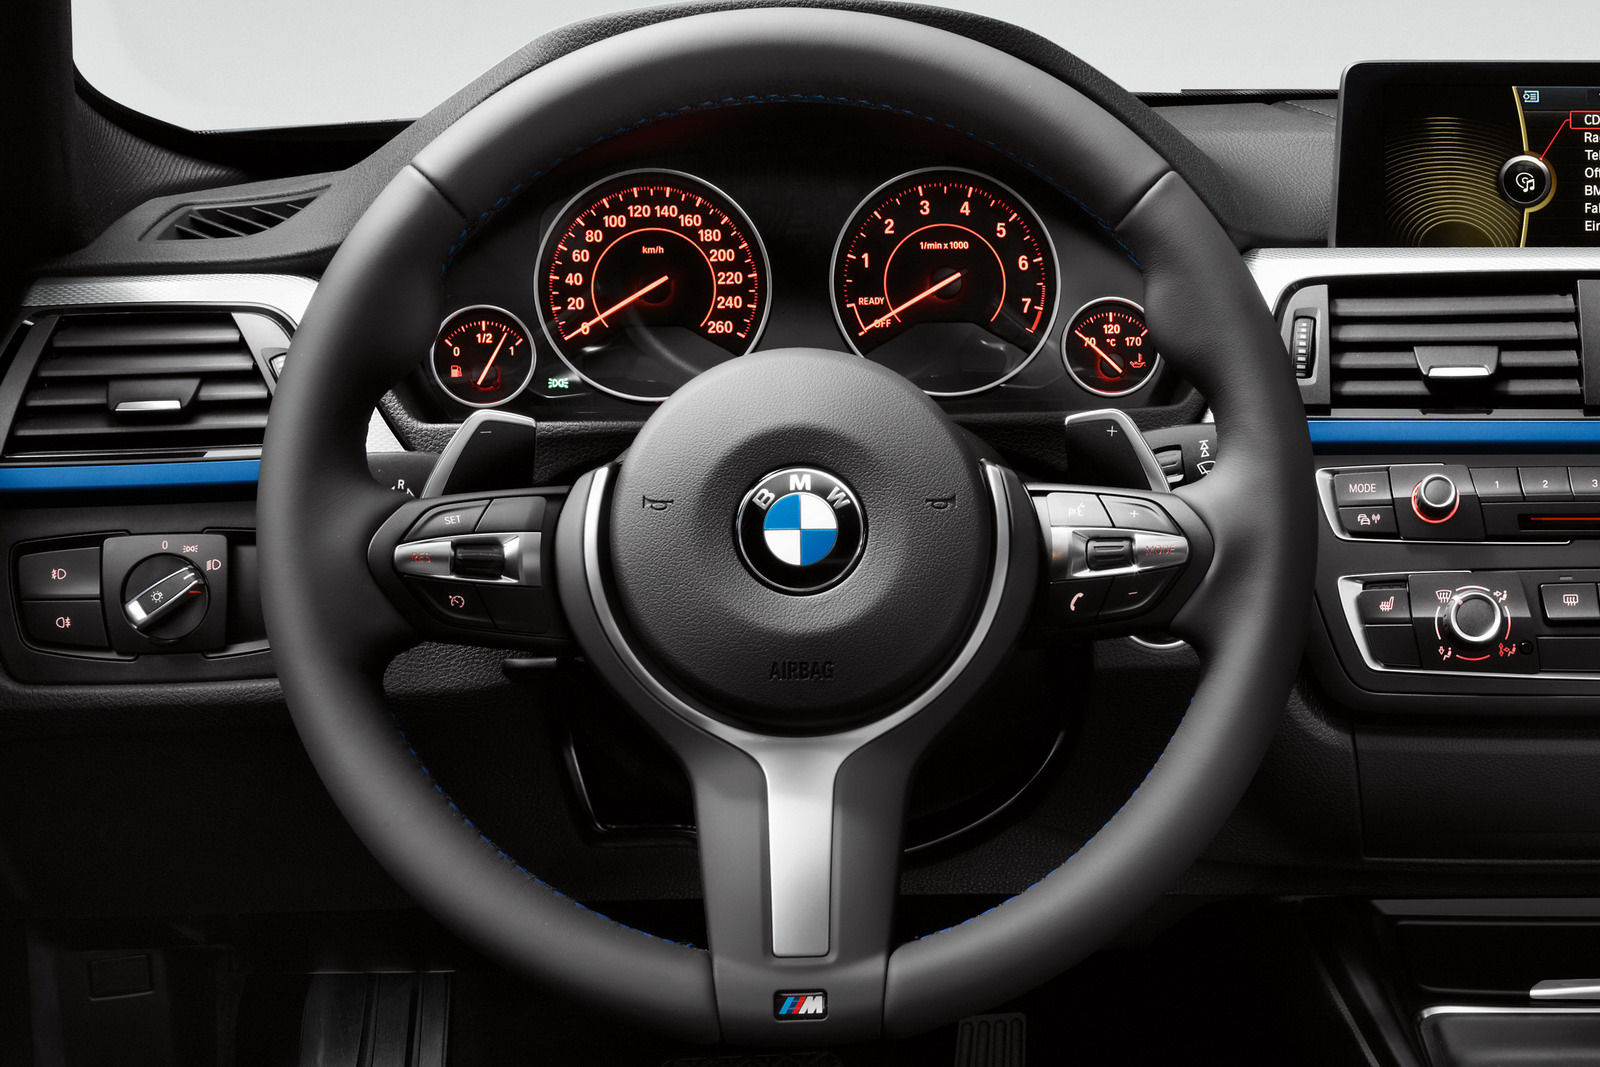 bmw f30 buttons explained